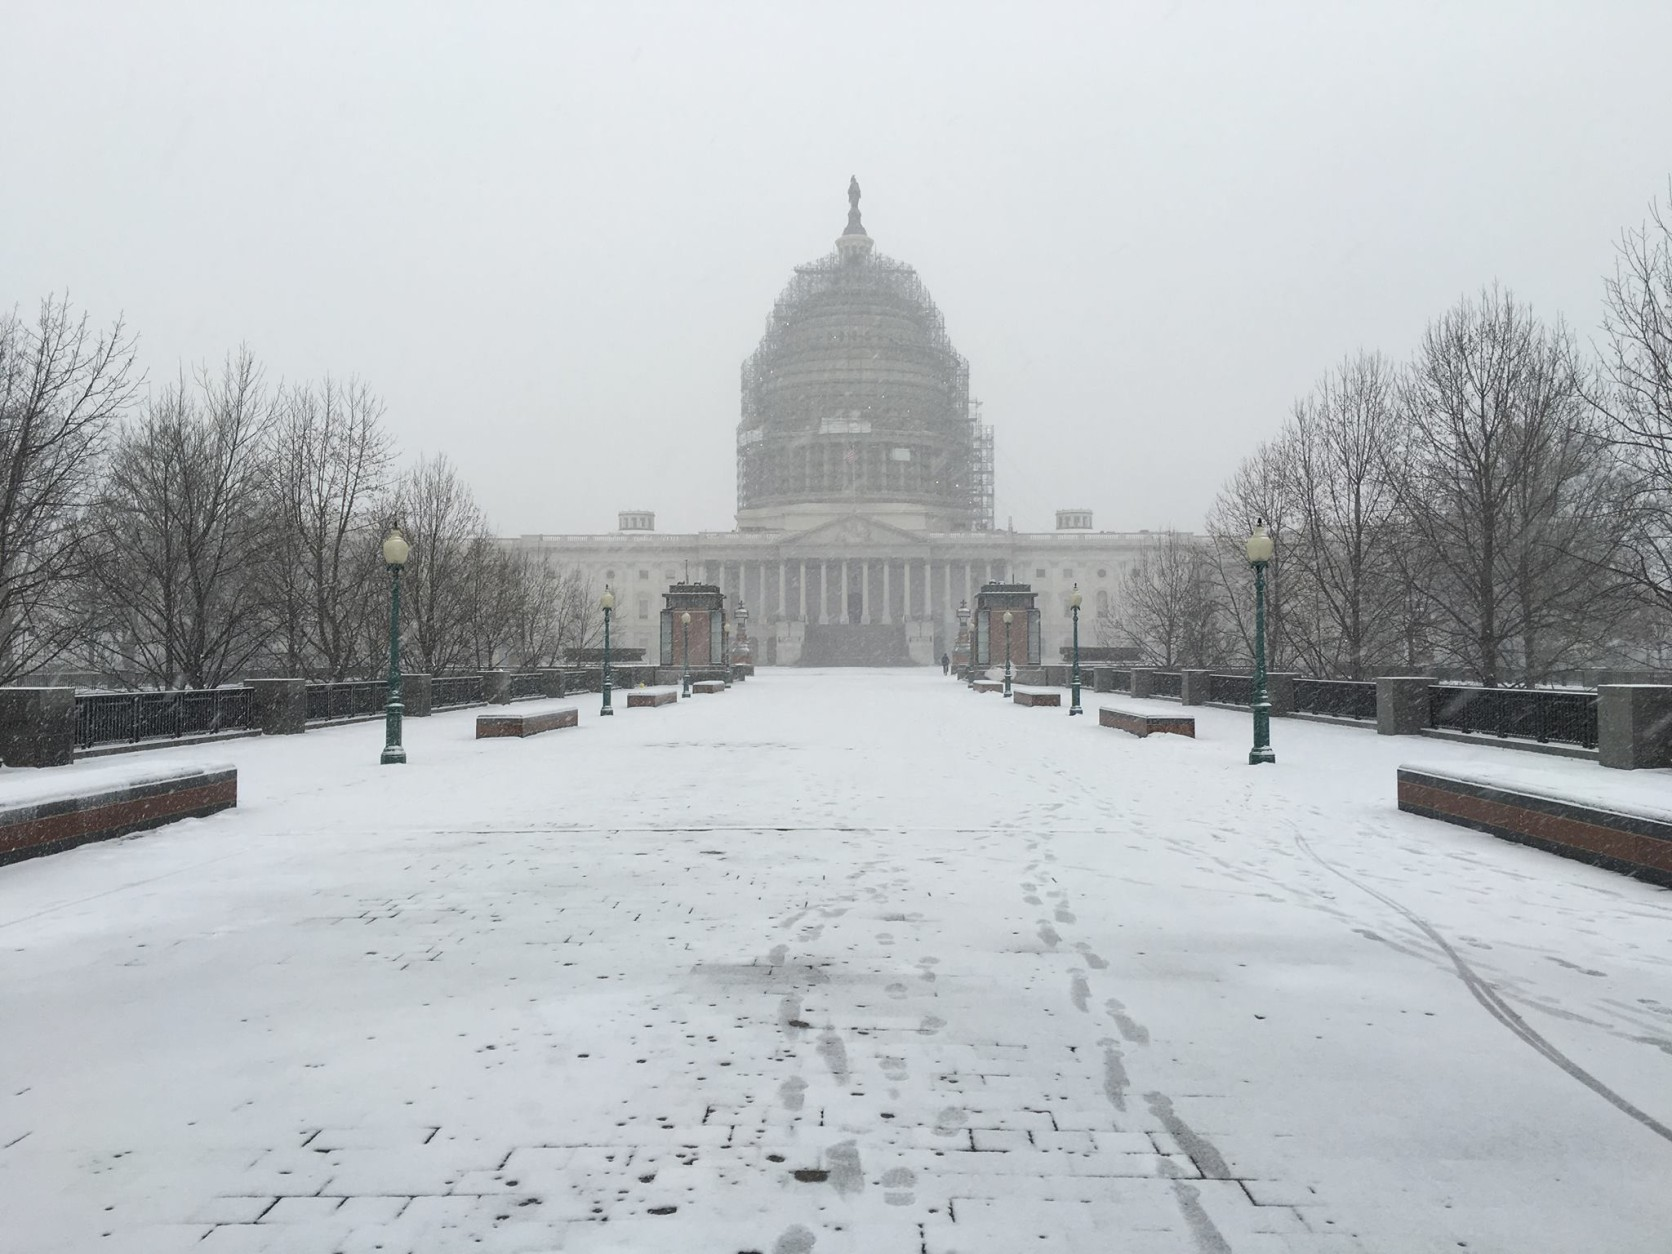 A veiw of the U.S. Capitol building on Friday, Jan. 22, 2016. The D.C.-Metro region is under a blizzard warning for the weekend. (From Facebook user Jesse Turner)